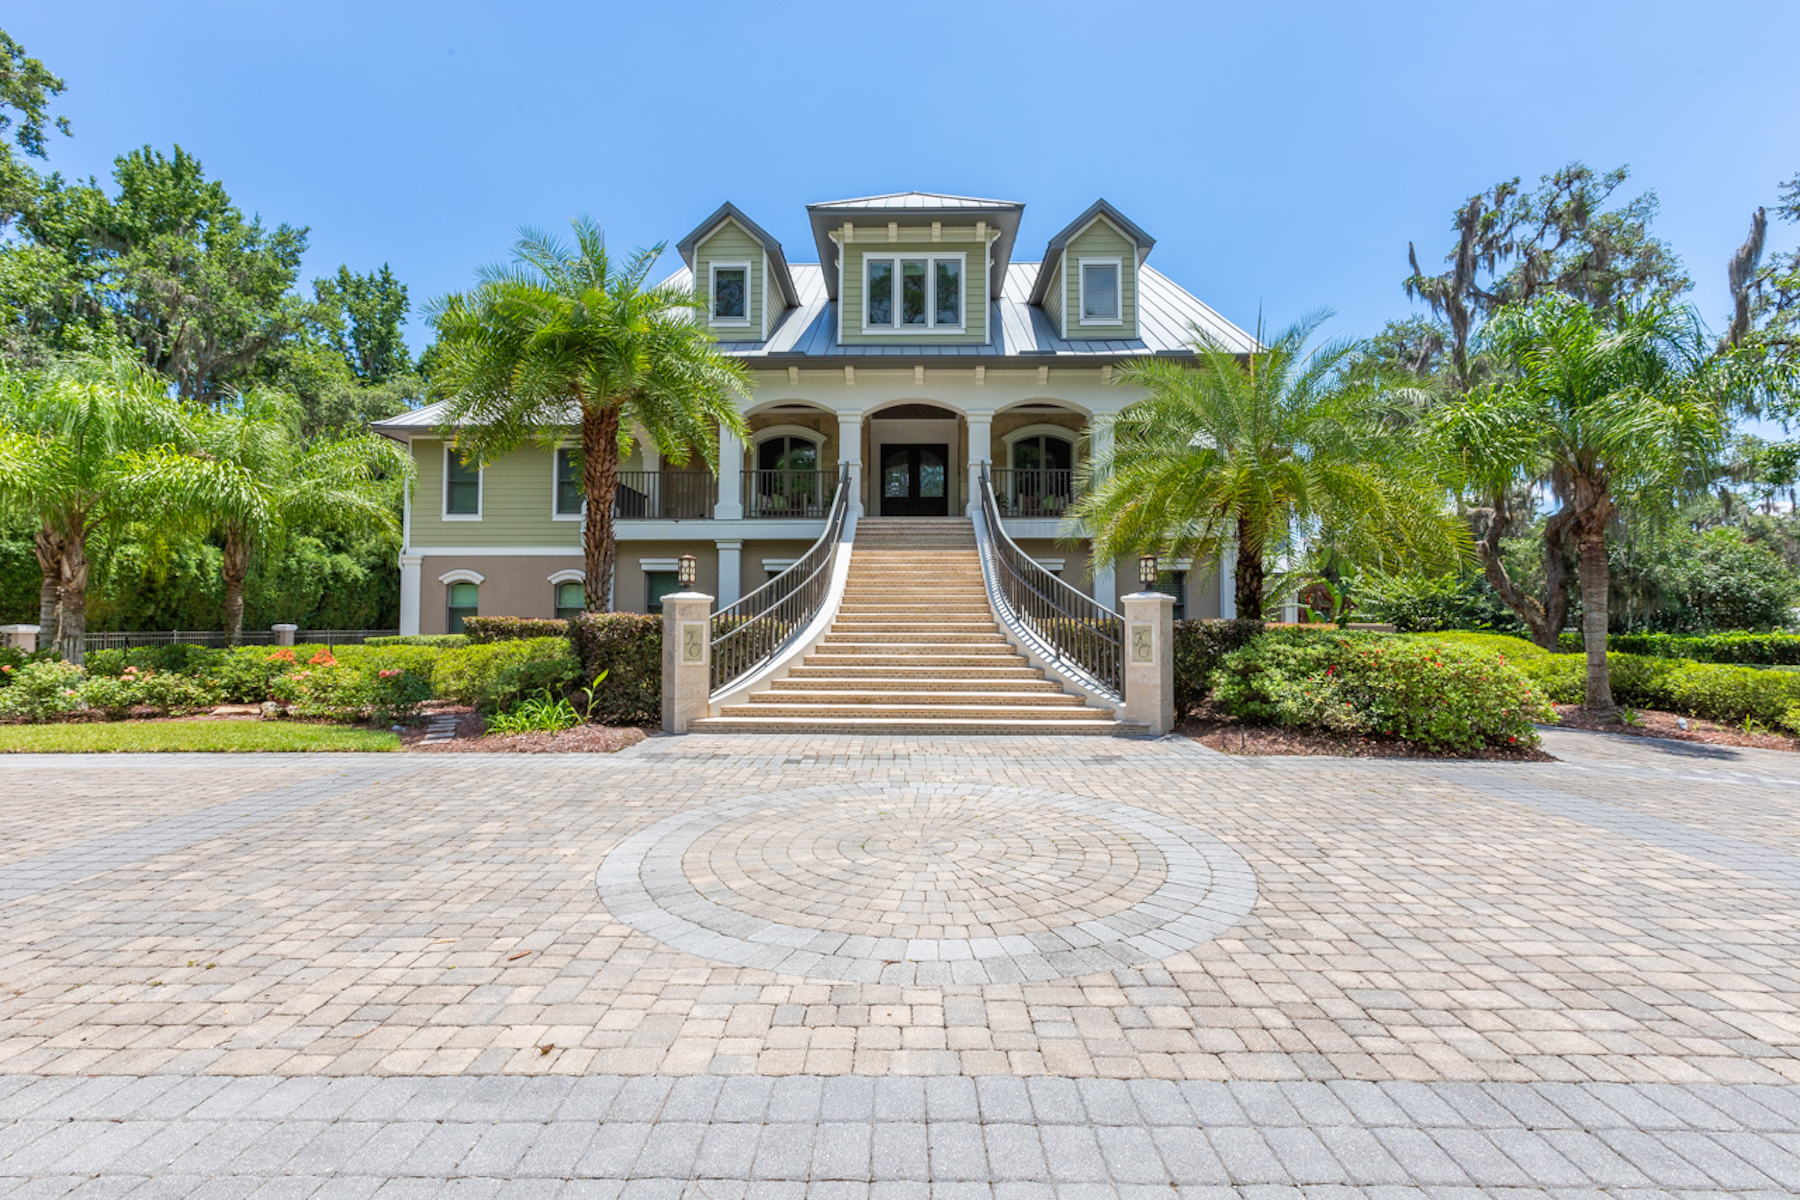 Single Family Homes for Sale at Green Cove Springs Masterpiece 140 Monterey Bay Lane Green Cove Springs, Florida 32043 United States